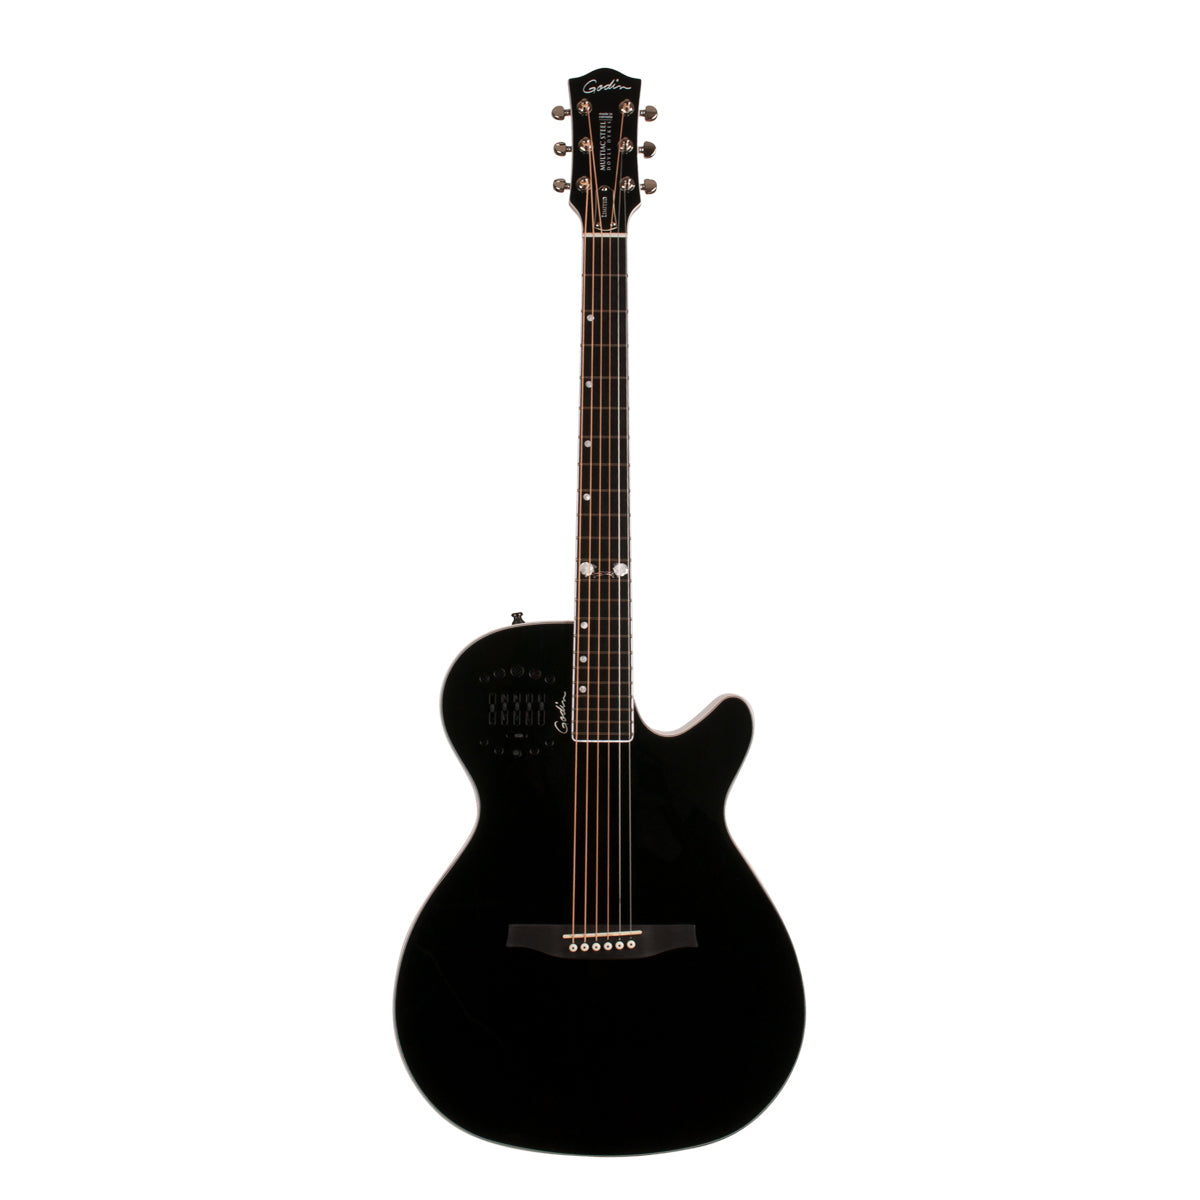 Godin Multiac Steel Doyle Dykes Signature Edition Black HG Electric Acoustic